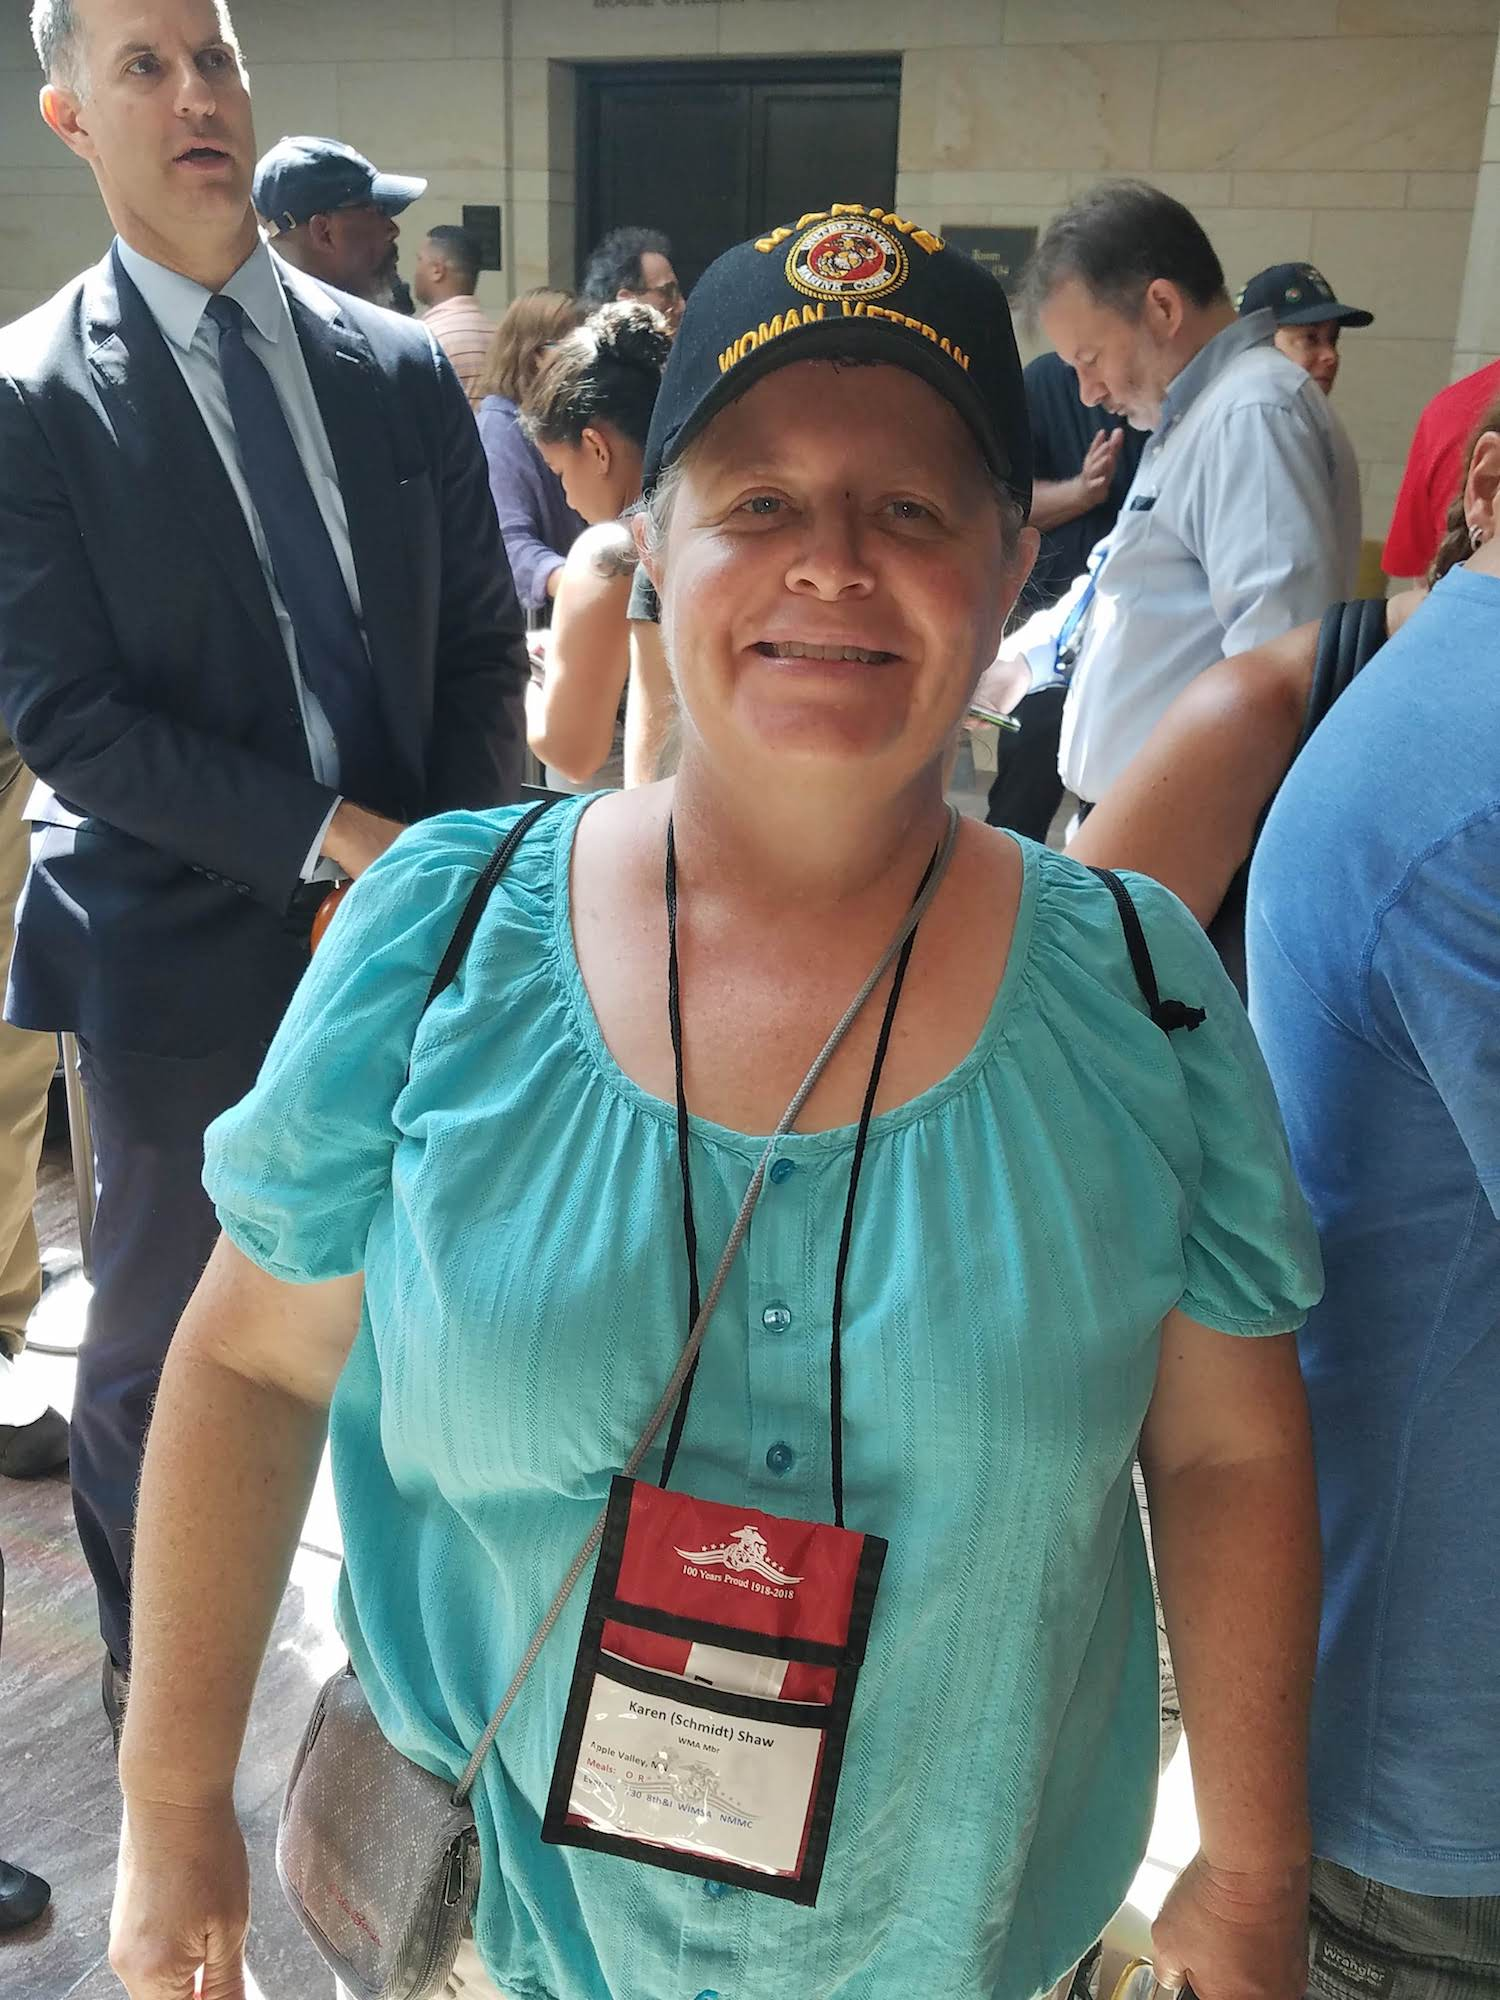 Image [U.S. Marine veteran Karen Shaw, at the wake of Senator John McCain, August 31, 2018]